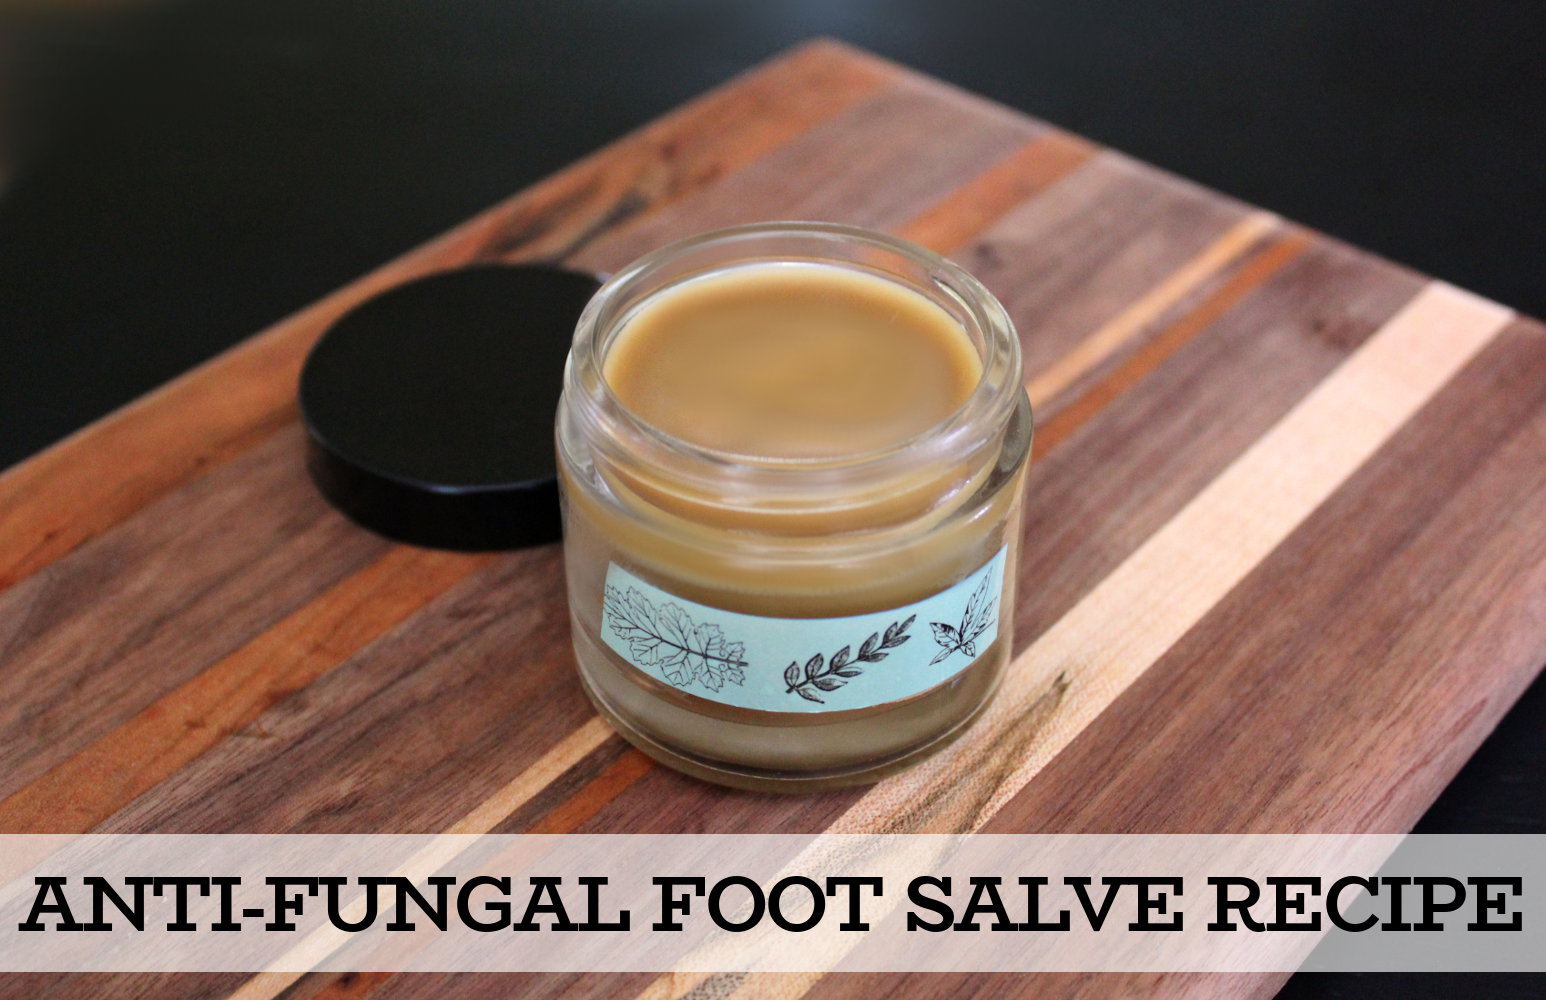 Antifungal Foot Salve Recipe - a natural holistic home remedy for athlete's foot, toenail fungus and candida with key ingredients like an anti-fungal essential oil, neem oil and coconut oil. This natural anti-fungal foot salve recipe is a great way to naturally promote skin health. Used daily it can help to treat fungal foot infections as well as prevent their reoccurrence. #antifungal